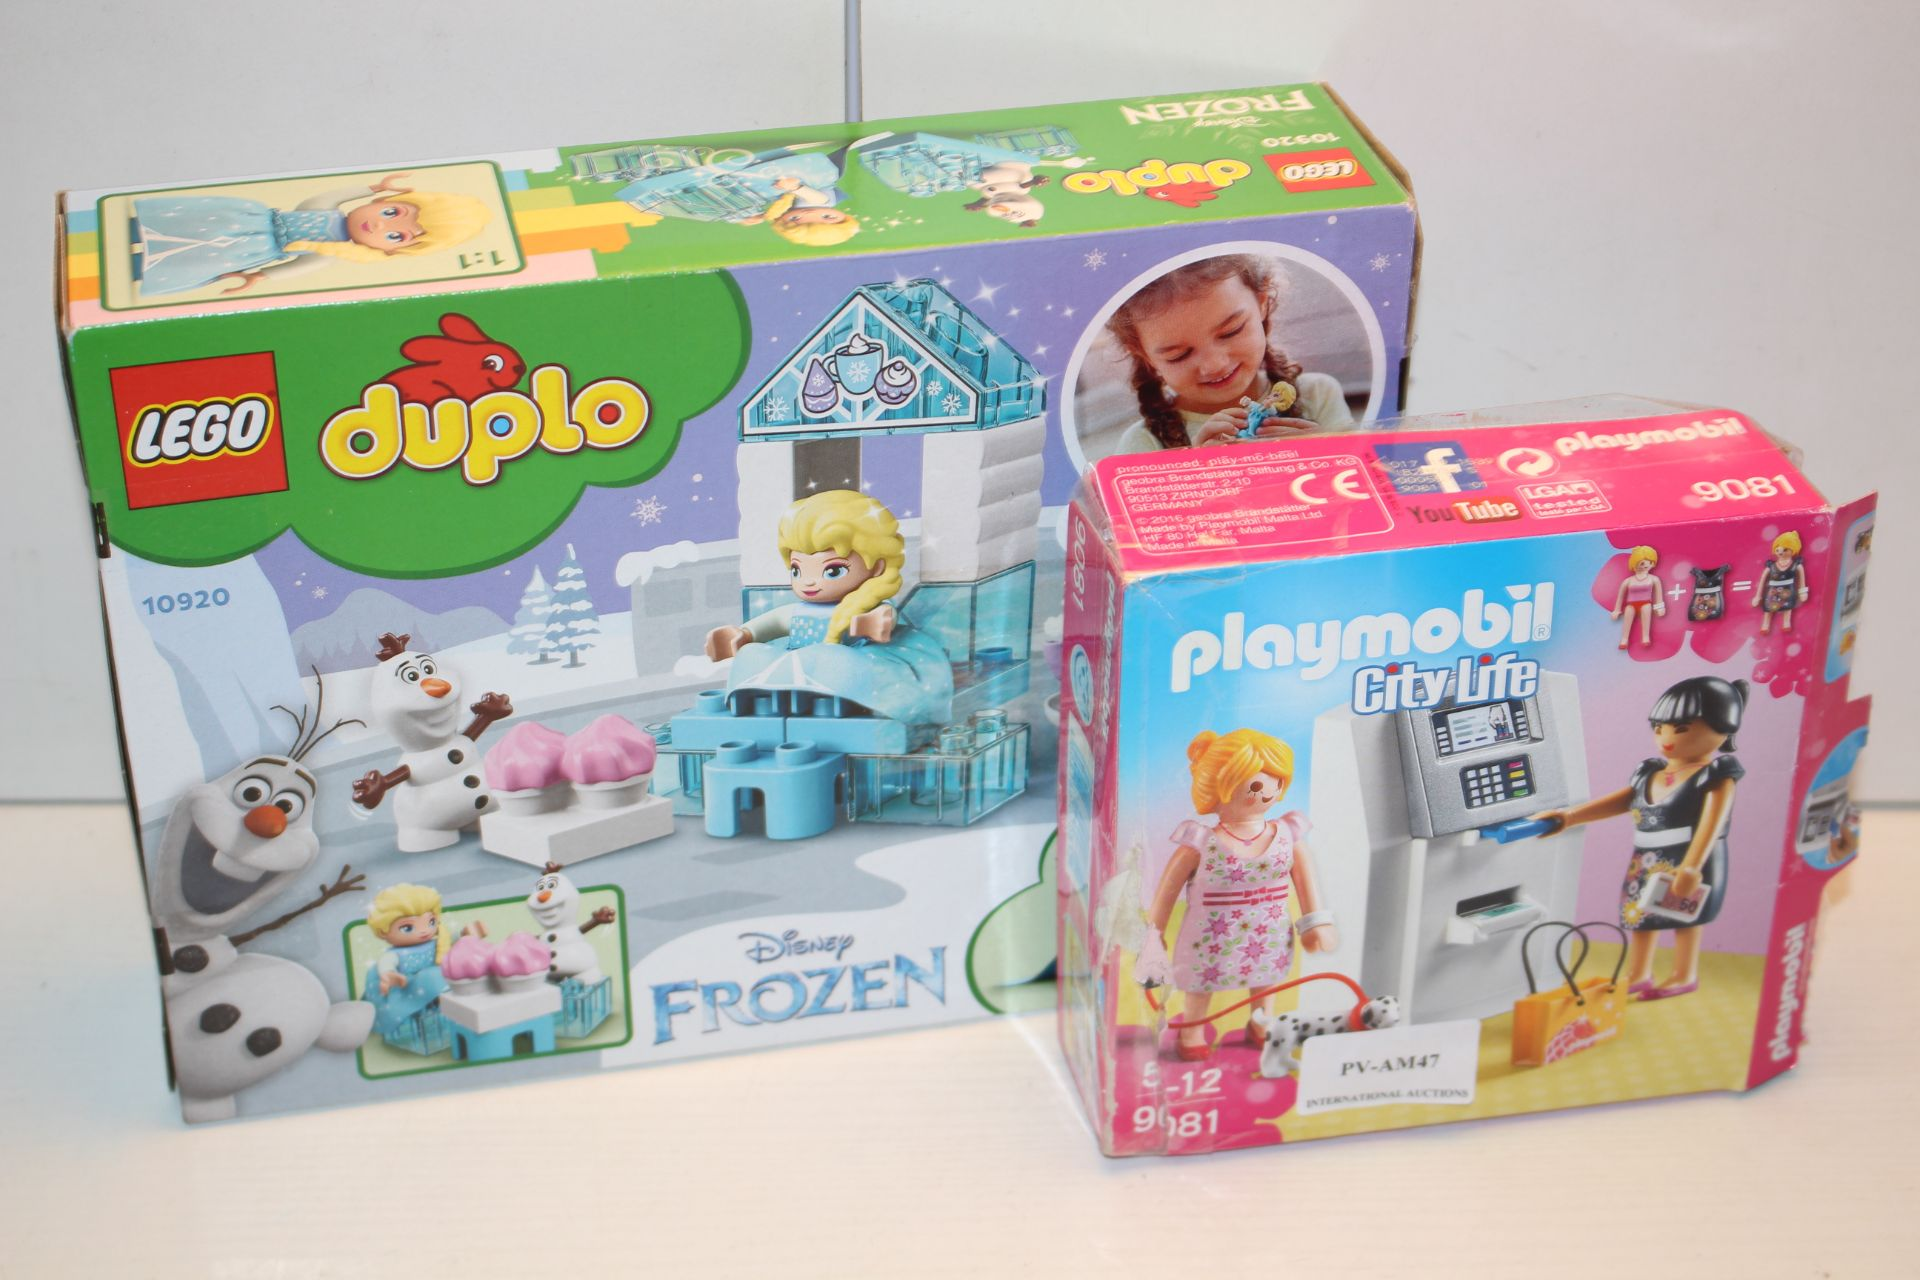 2X BOXED ASSORTED ITEMS TO INCLUDE LEGO DUPLO & PLAYMOBIL (IMAGE DEPICTS STOCK)Condition